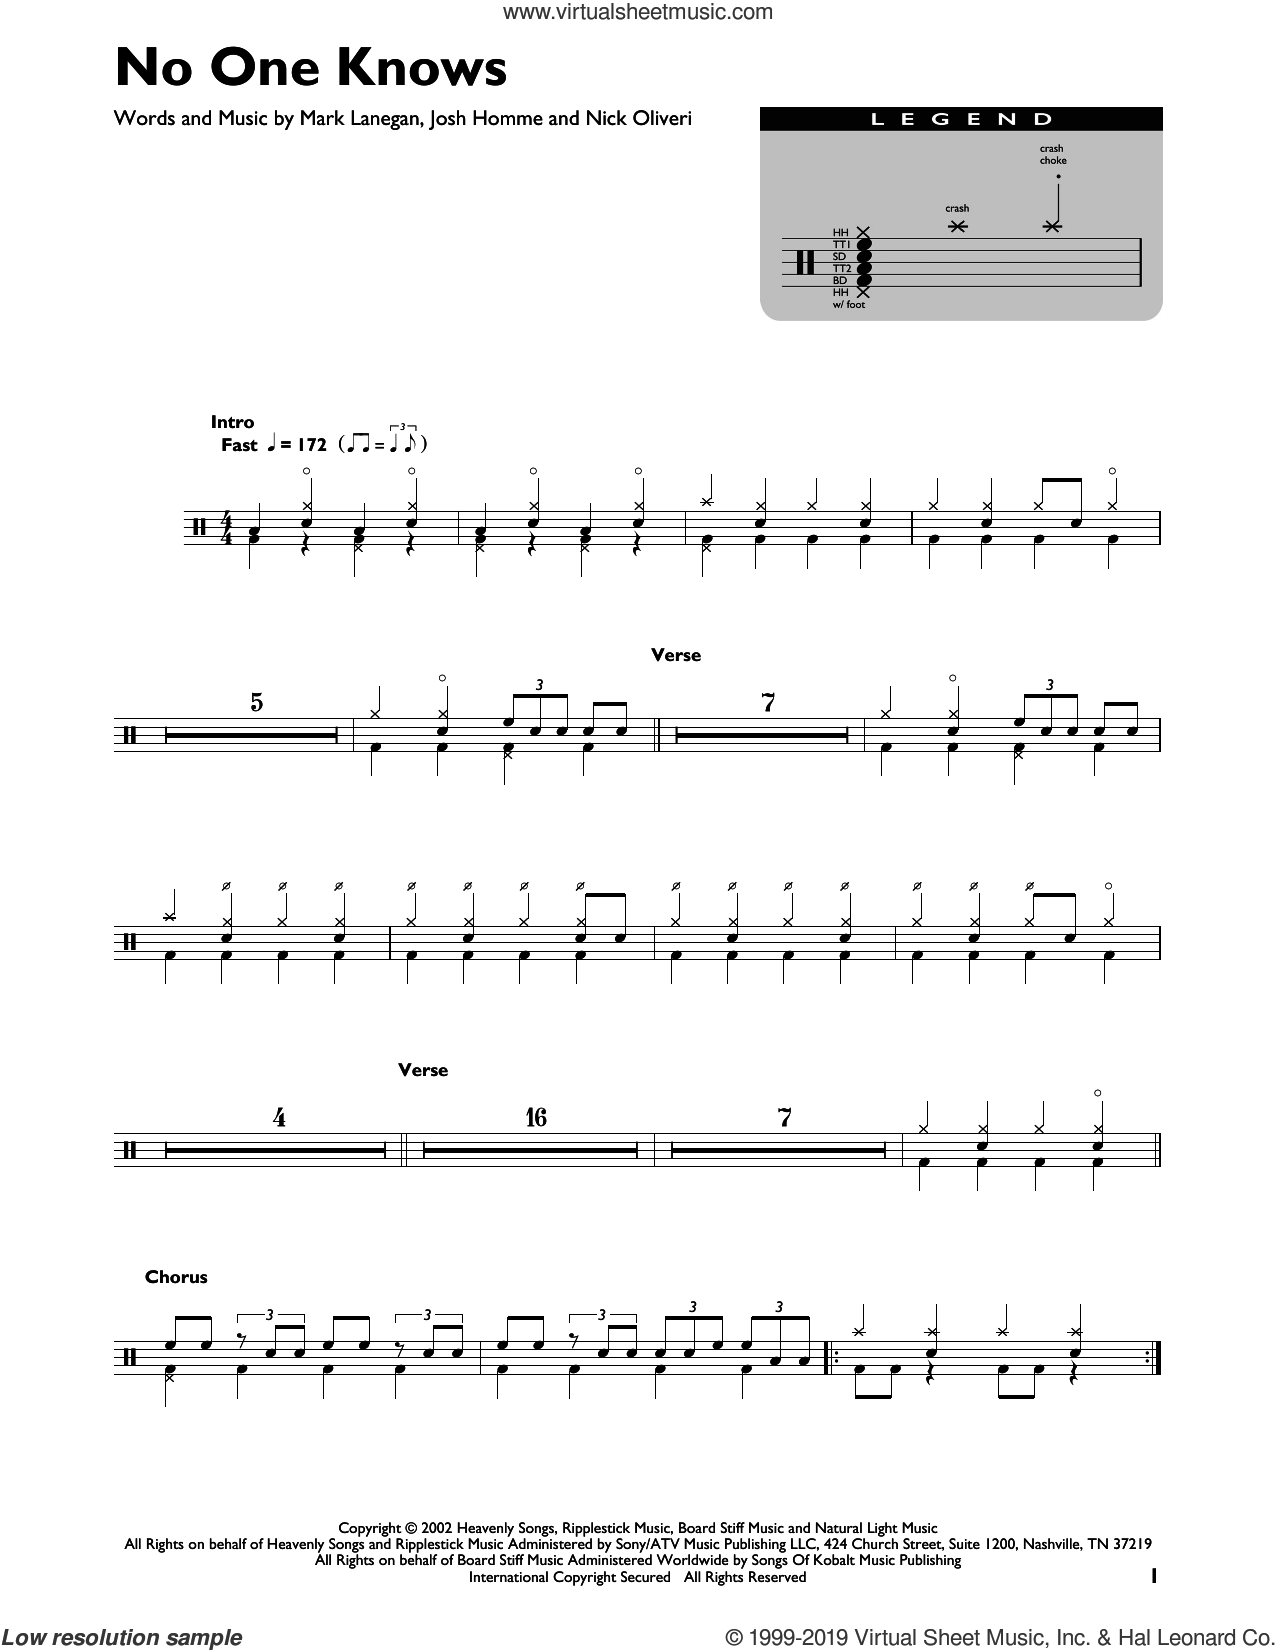 No One Knows sheet music for drums by Queens Of The Stone Age, Josh Homme, Mark Lanegan and Nick Oliveri, intermediate skill level